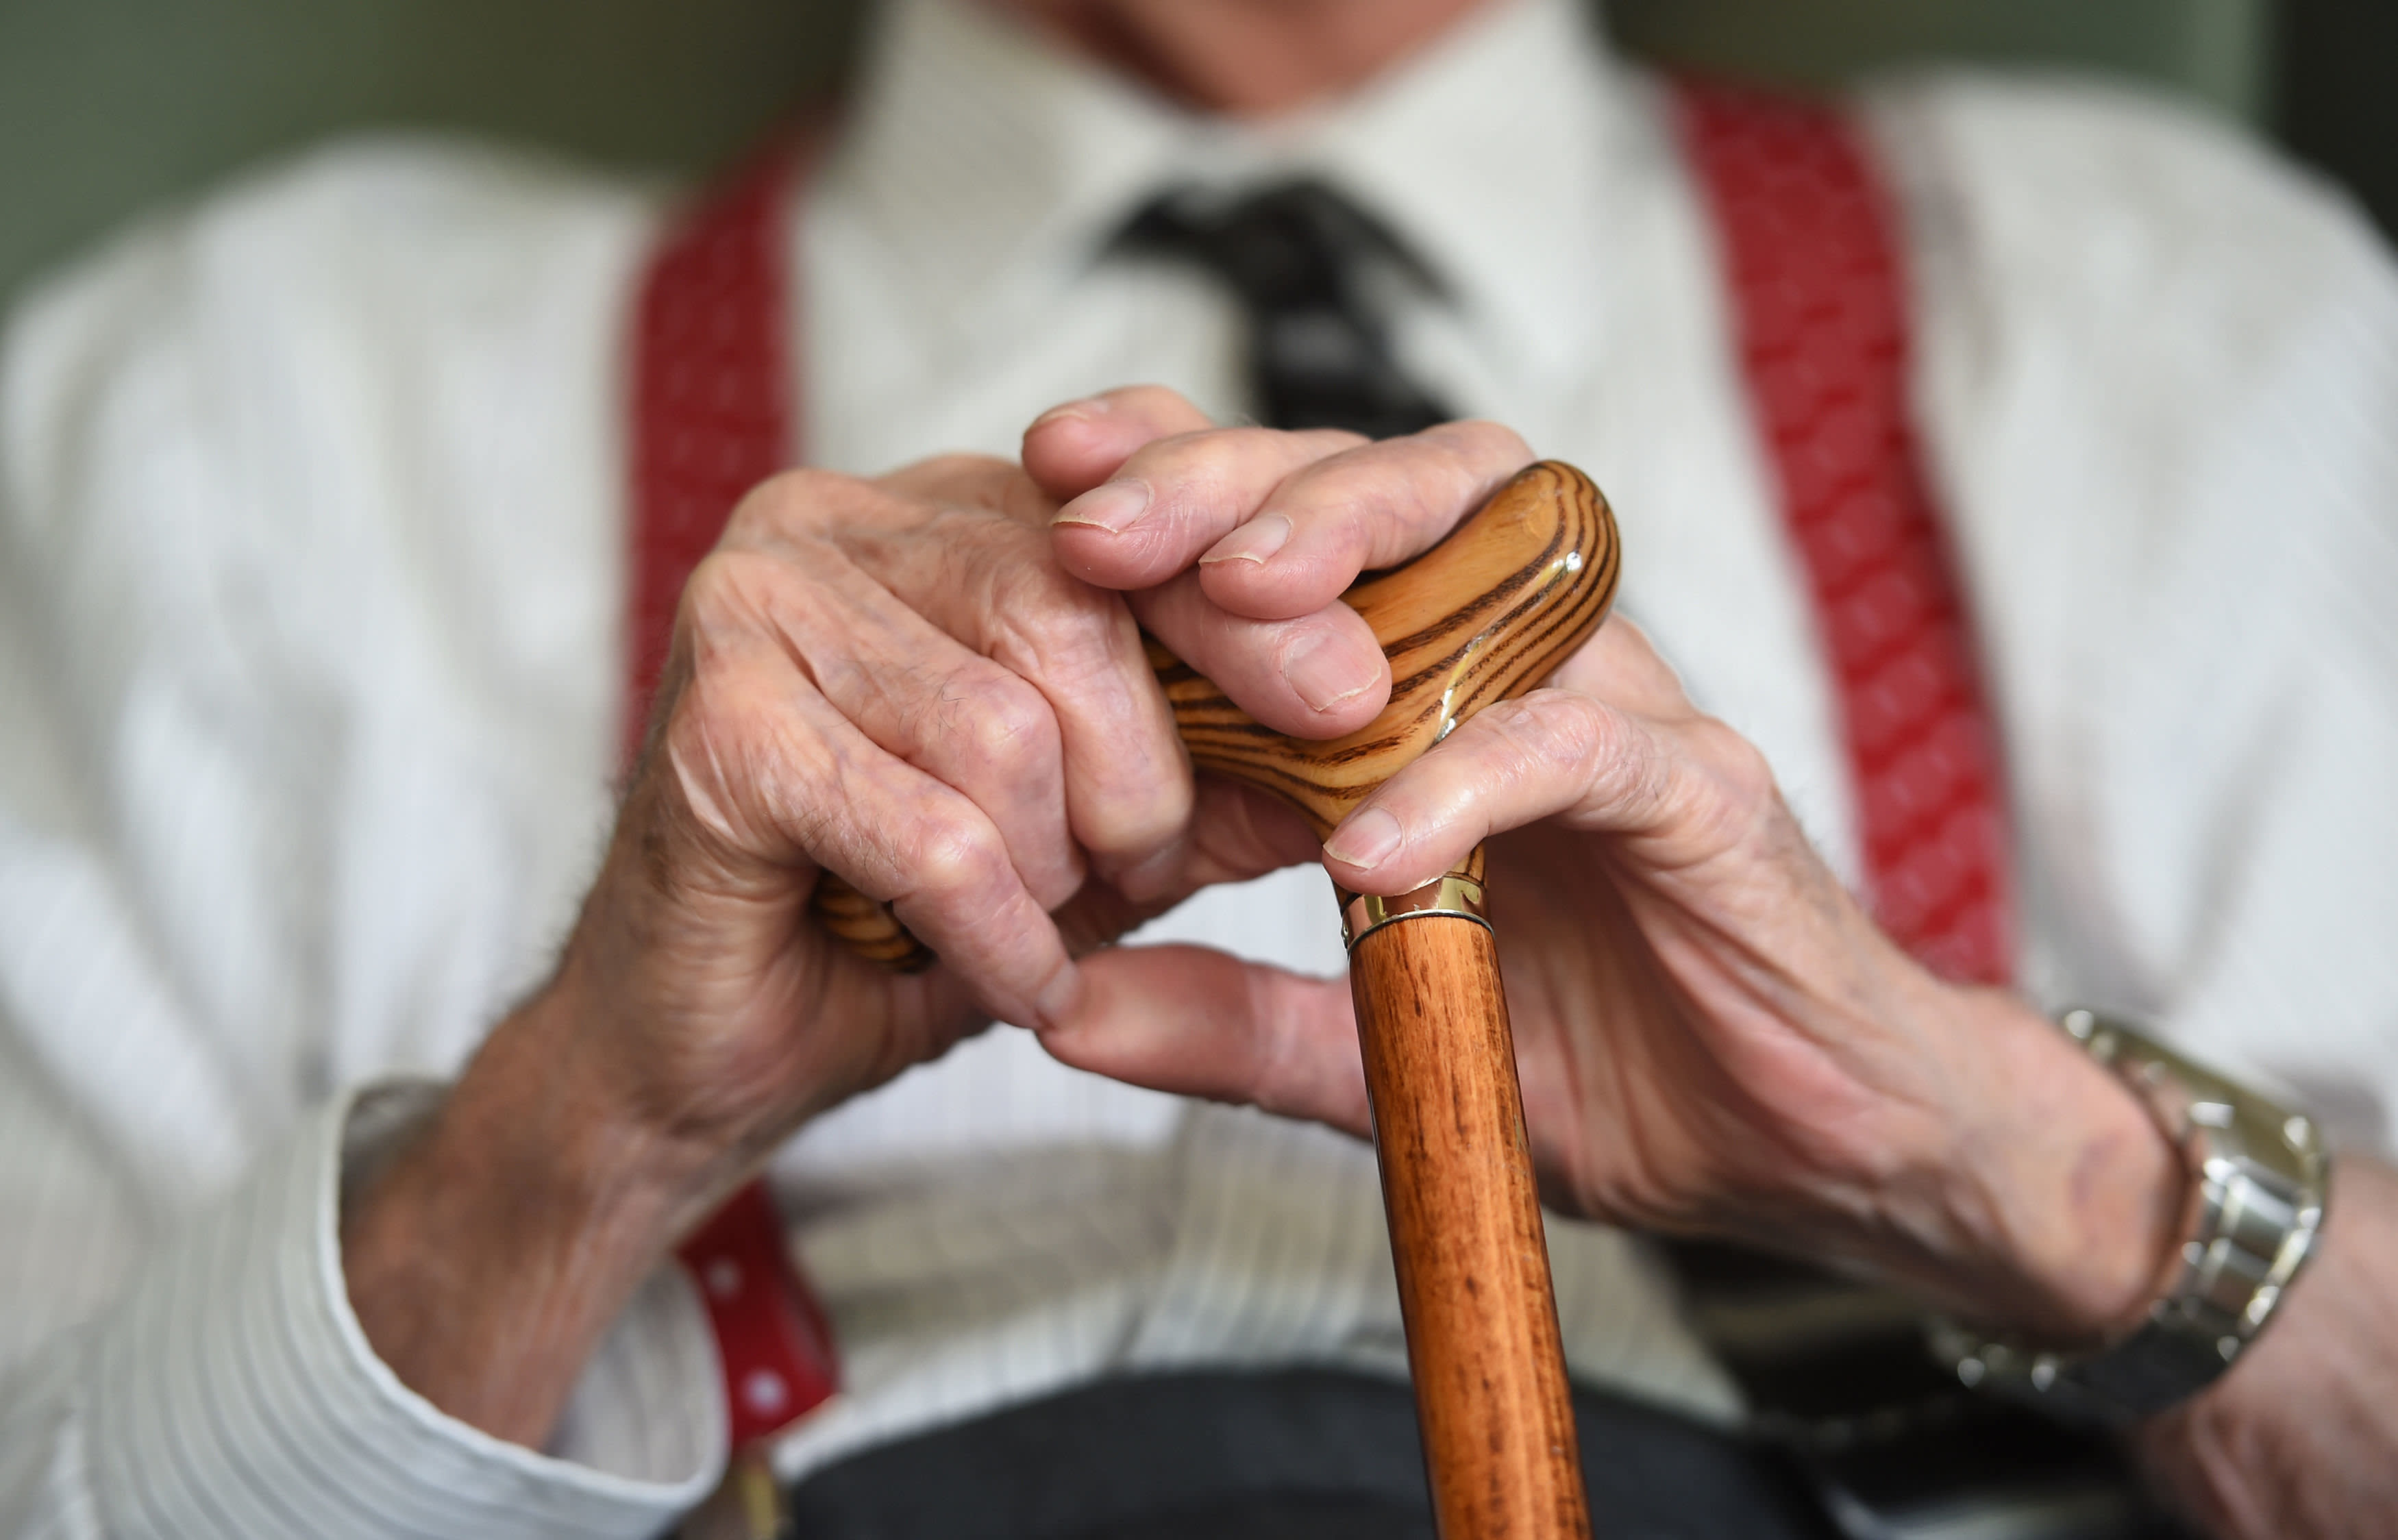 Budget 2021: Social care ignored once more